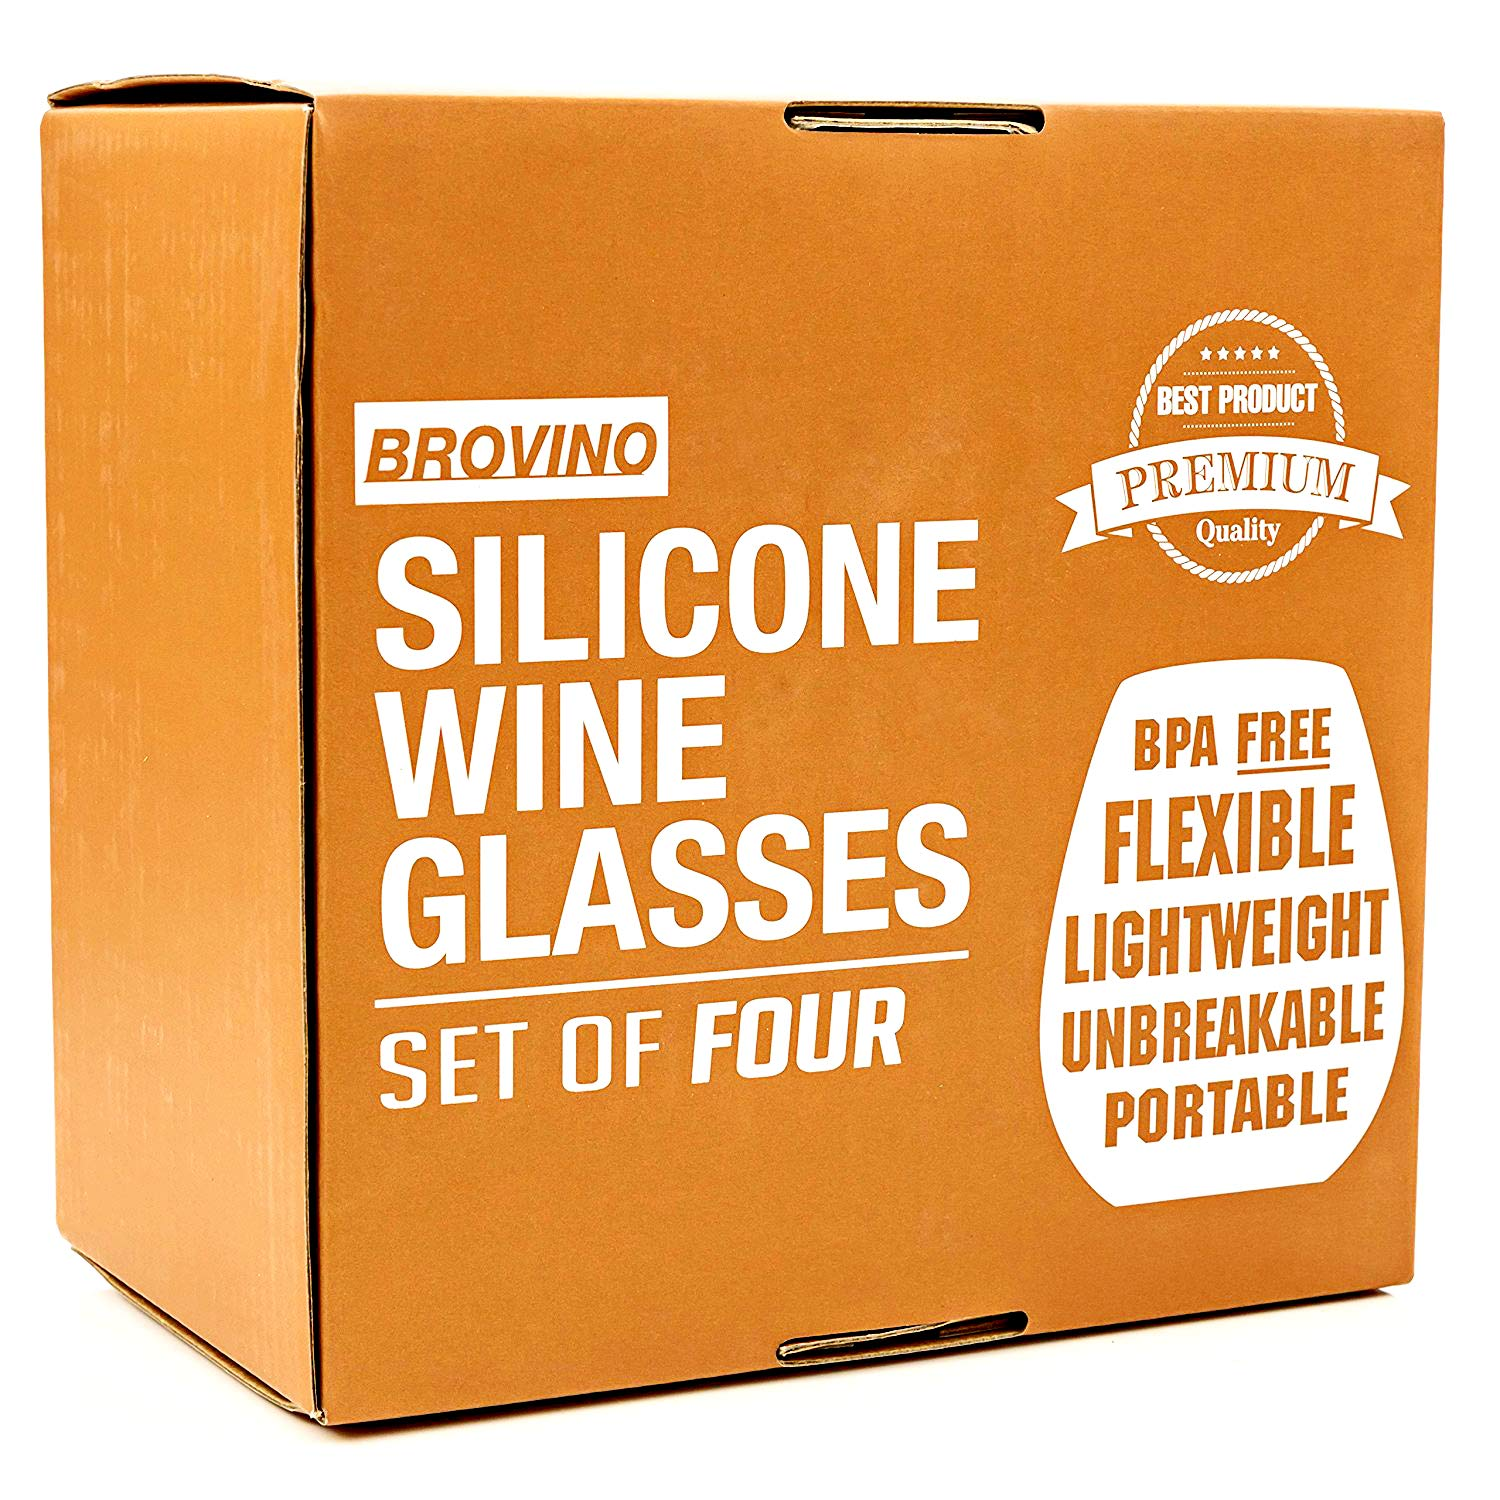 Silicone Wine Glasses - Set of 4 - Unbreakable Outdoor Rubber Wine Cups: 14 oz, Clear Silicone. 100% Dishwasher Safe - Shatterproof Glass for Travel, Outdoor, Picnic, Pool, Boat, Camping by Brovino (Image #7)